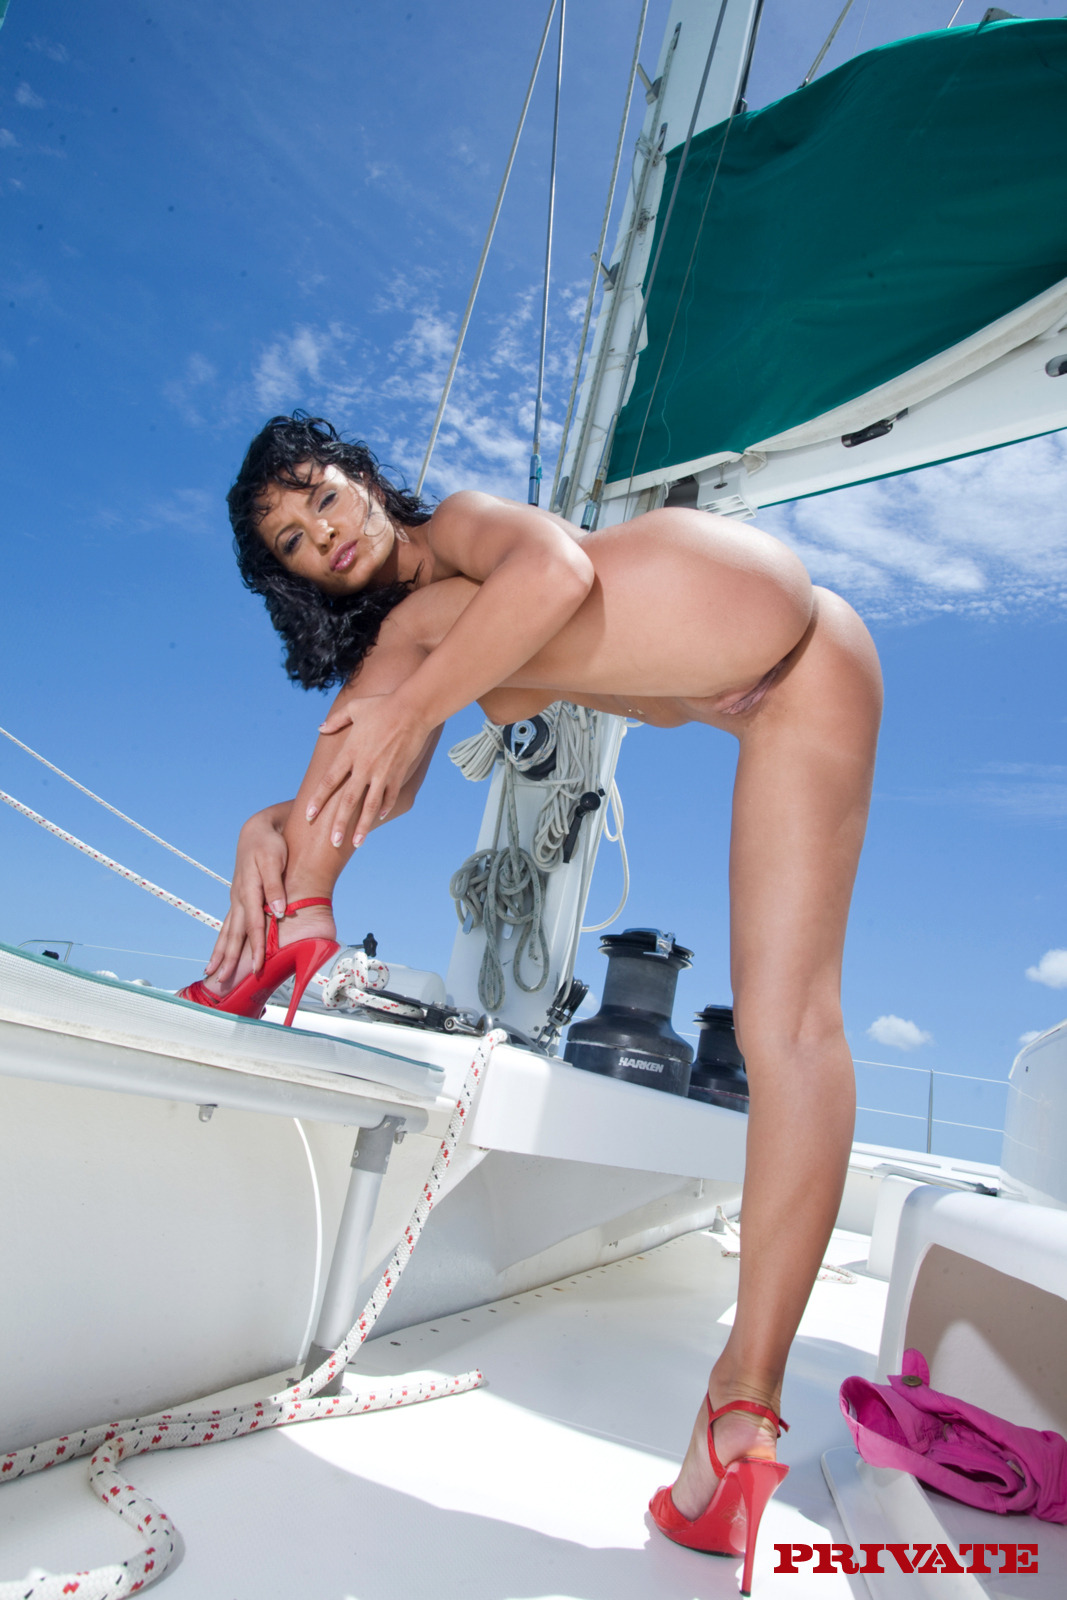 cdnhw galleries private Lucy Belle Boroka Does The Caribbean 4